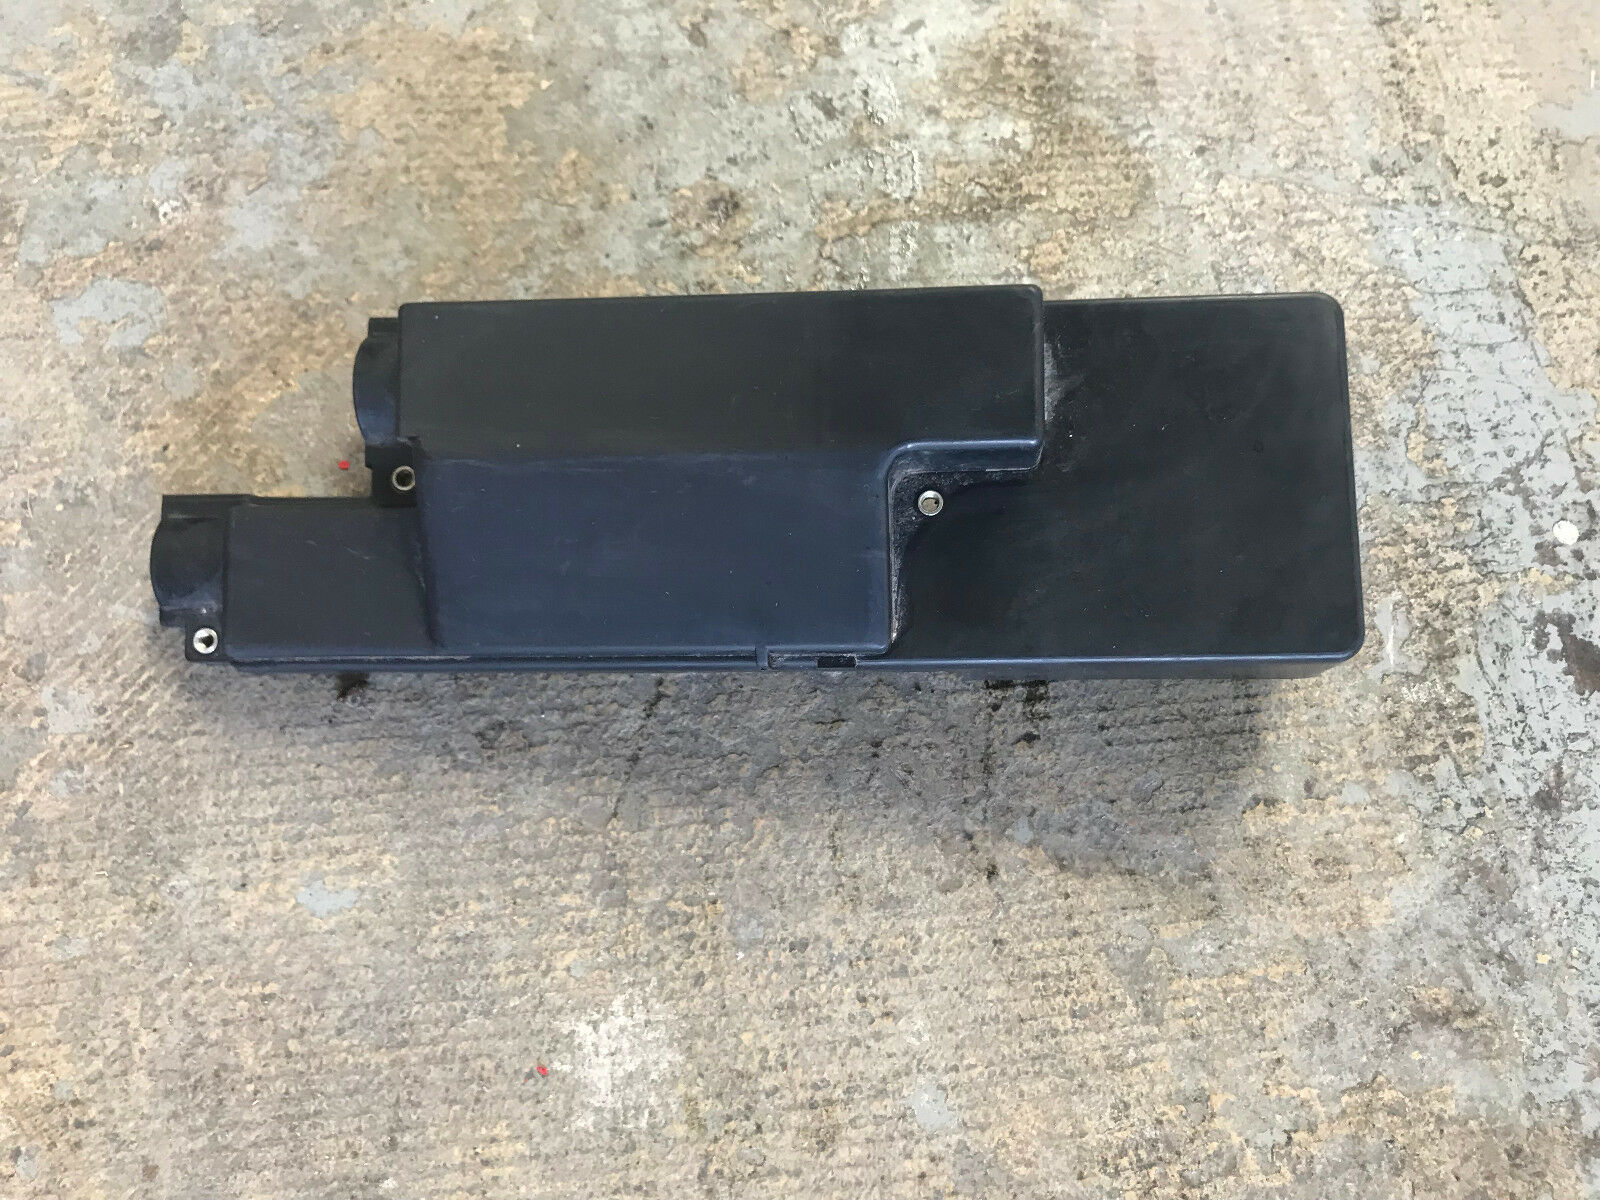 Used Bmw 2002 Safety And Security For Sale E46 Ecu Fuse Relay Box Oem 1996 Z3 Engine Dme Cover Lid Pan